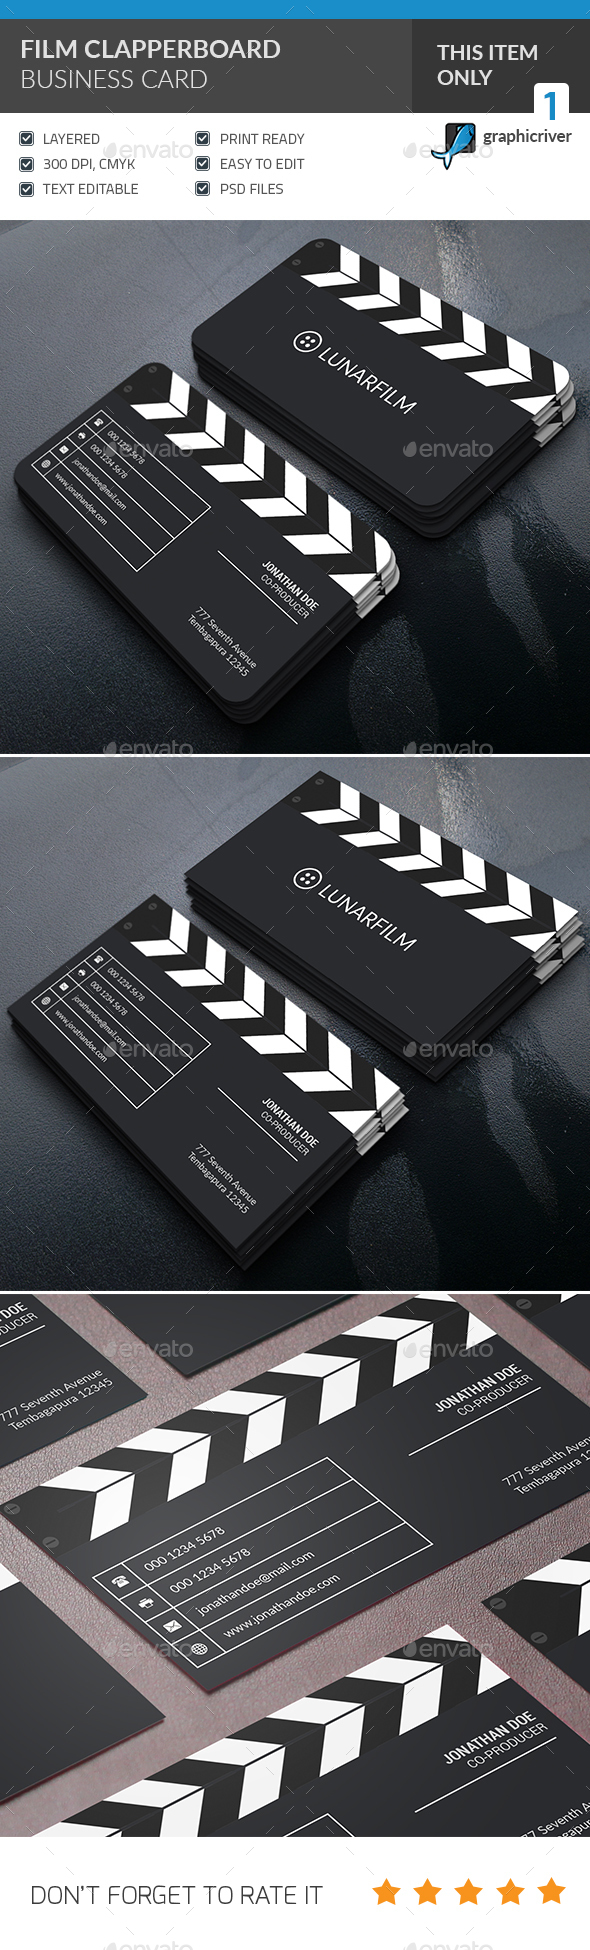 Clipperboard Business Card  - Industry Specific Business Cards